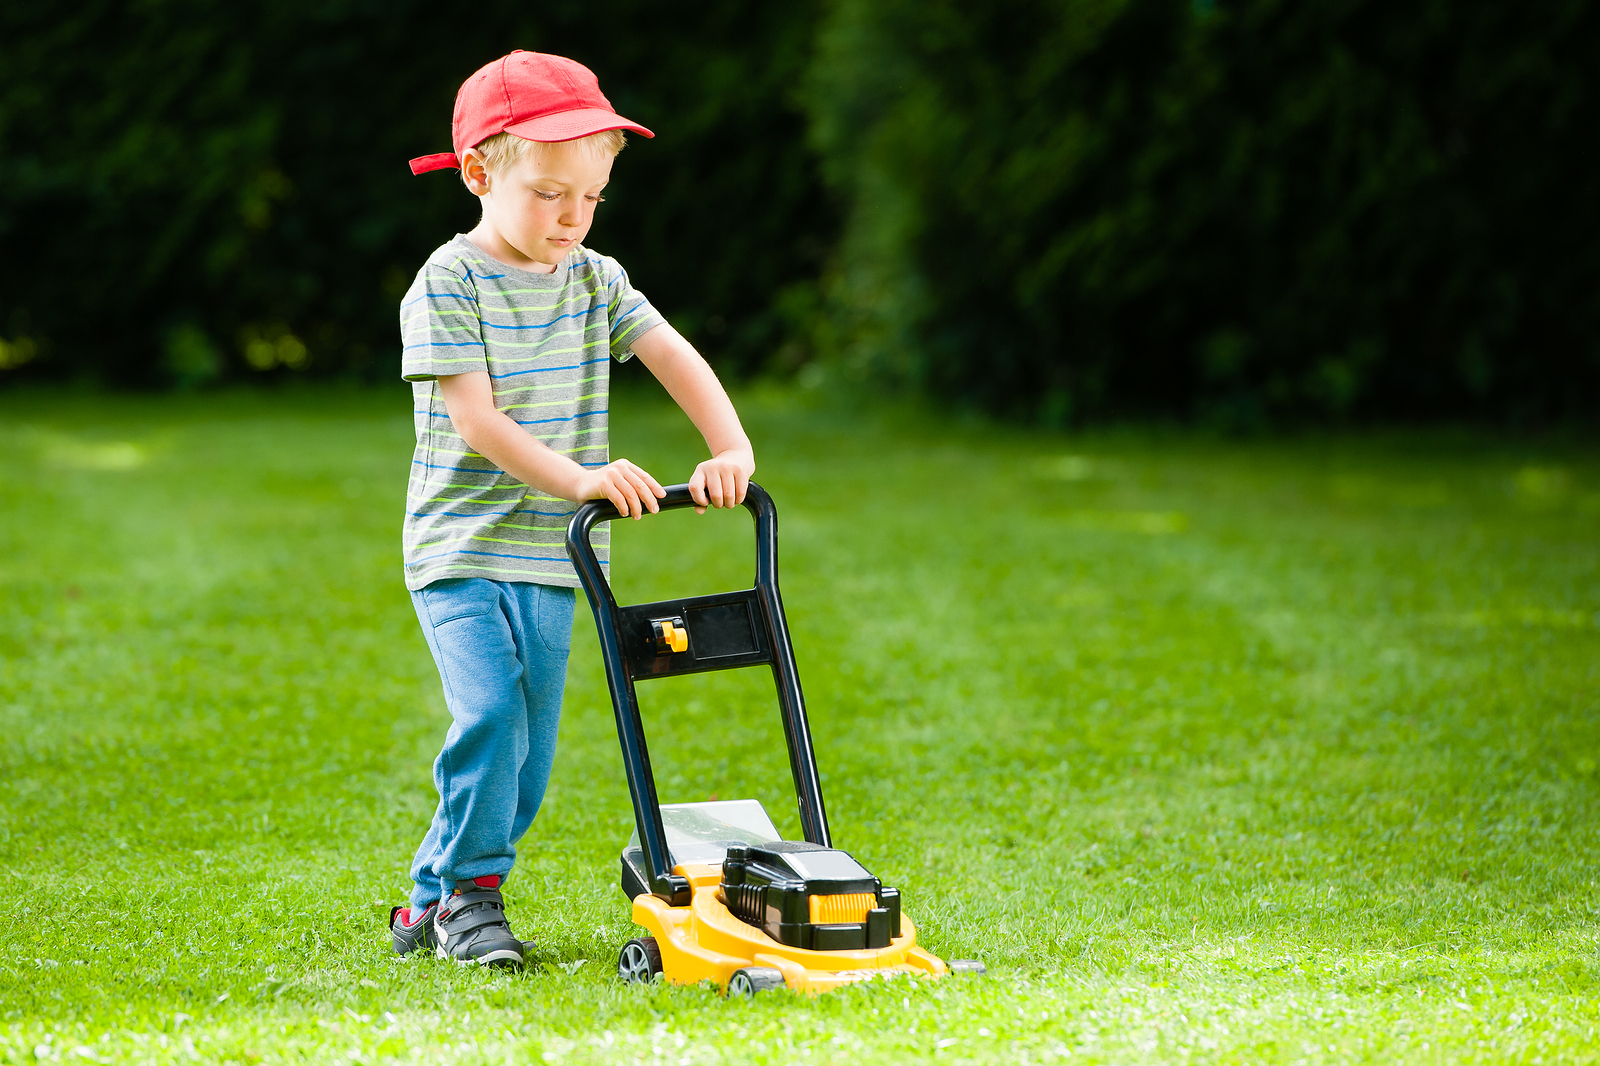 Study: Lawn-Mower Related Injuries In Children Too Common